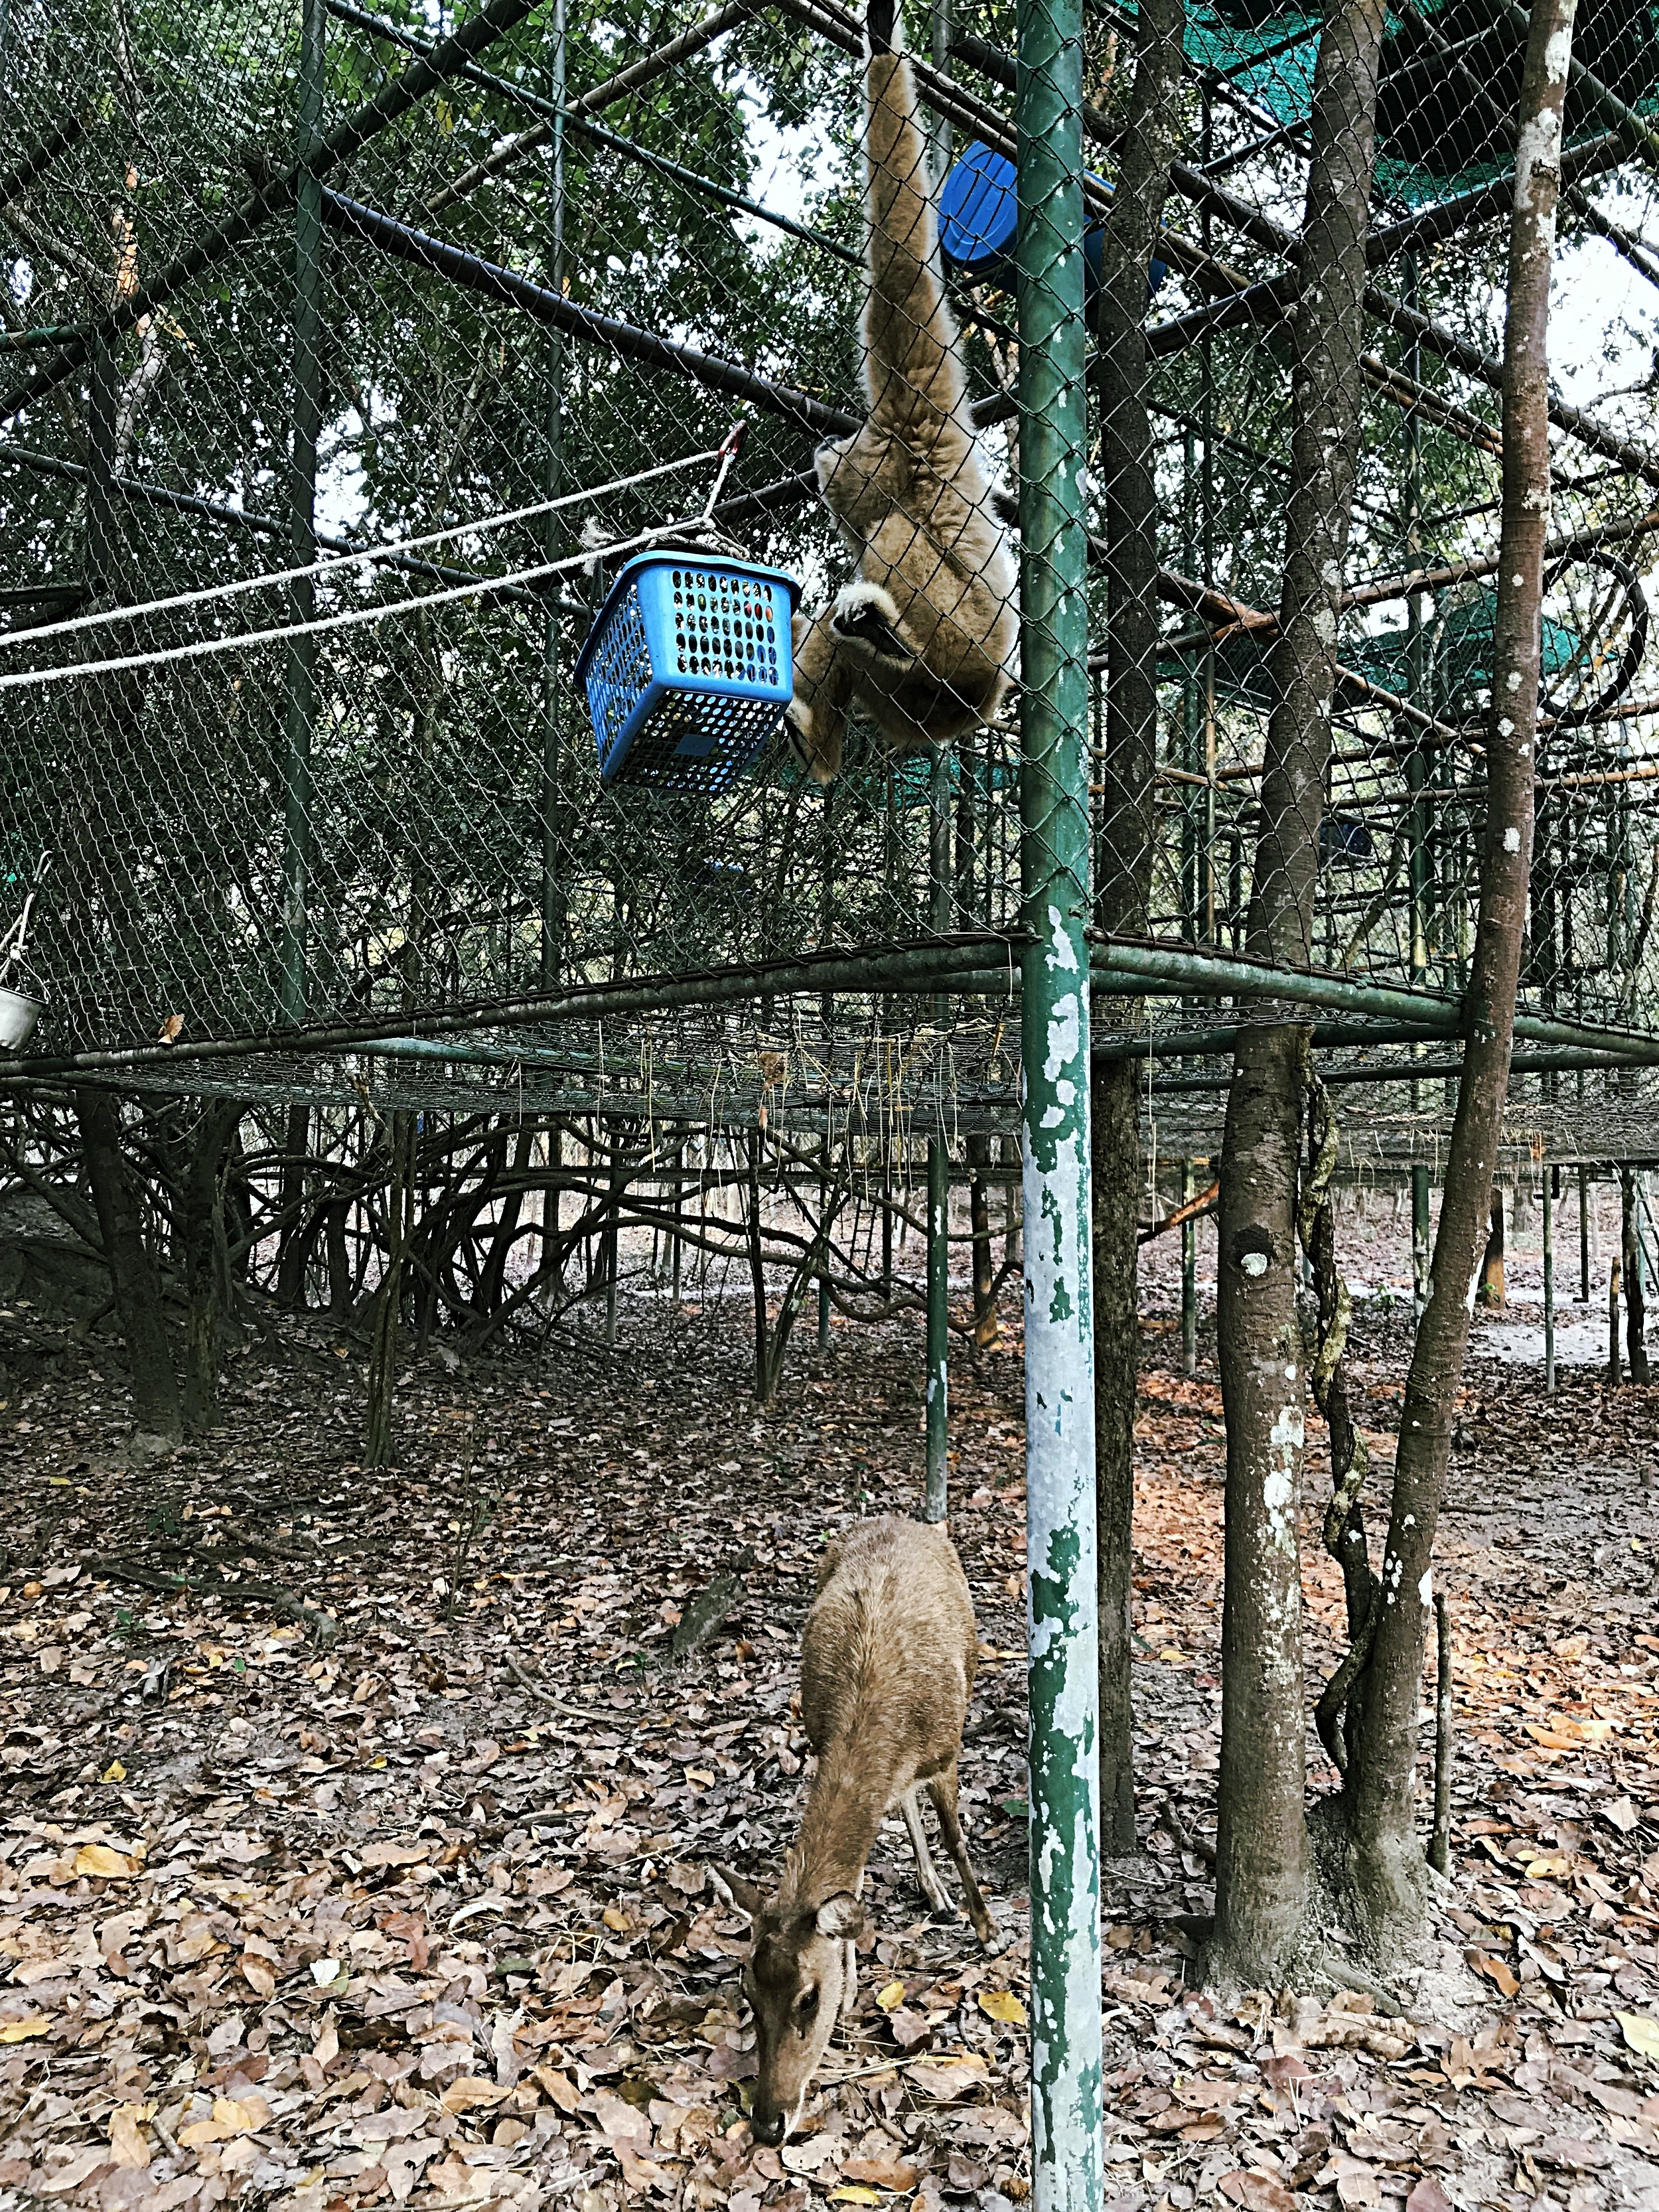 Deer catching the food that the gibbon dropped